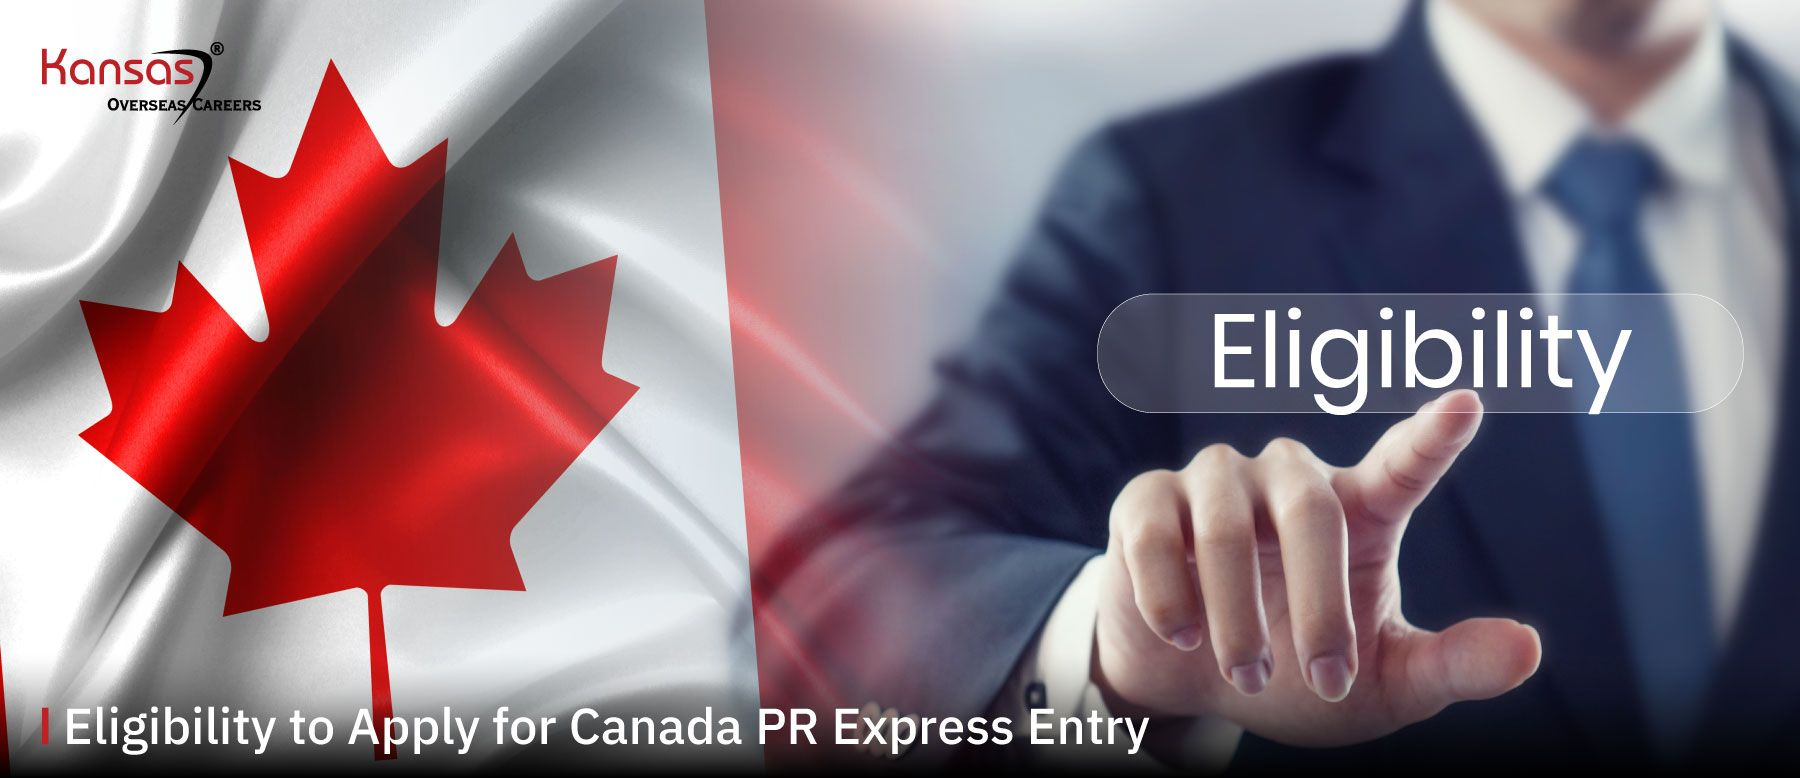 Eligibility-to-Apply-for-Canada-PR-Express-Entry